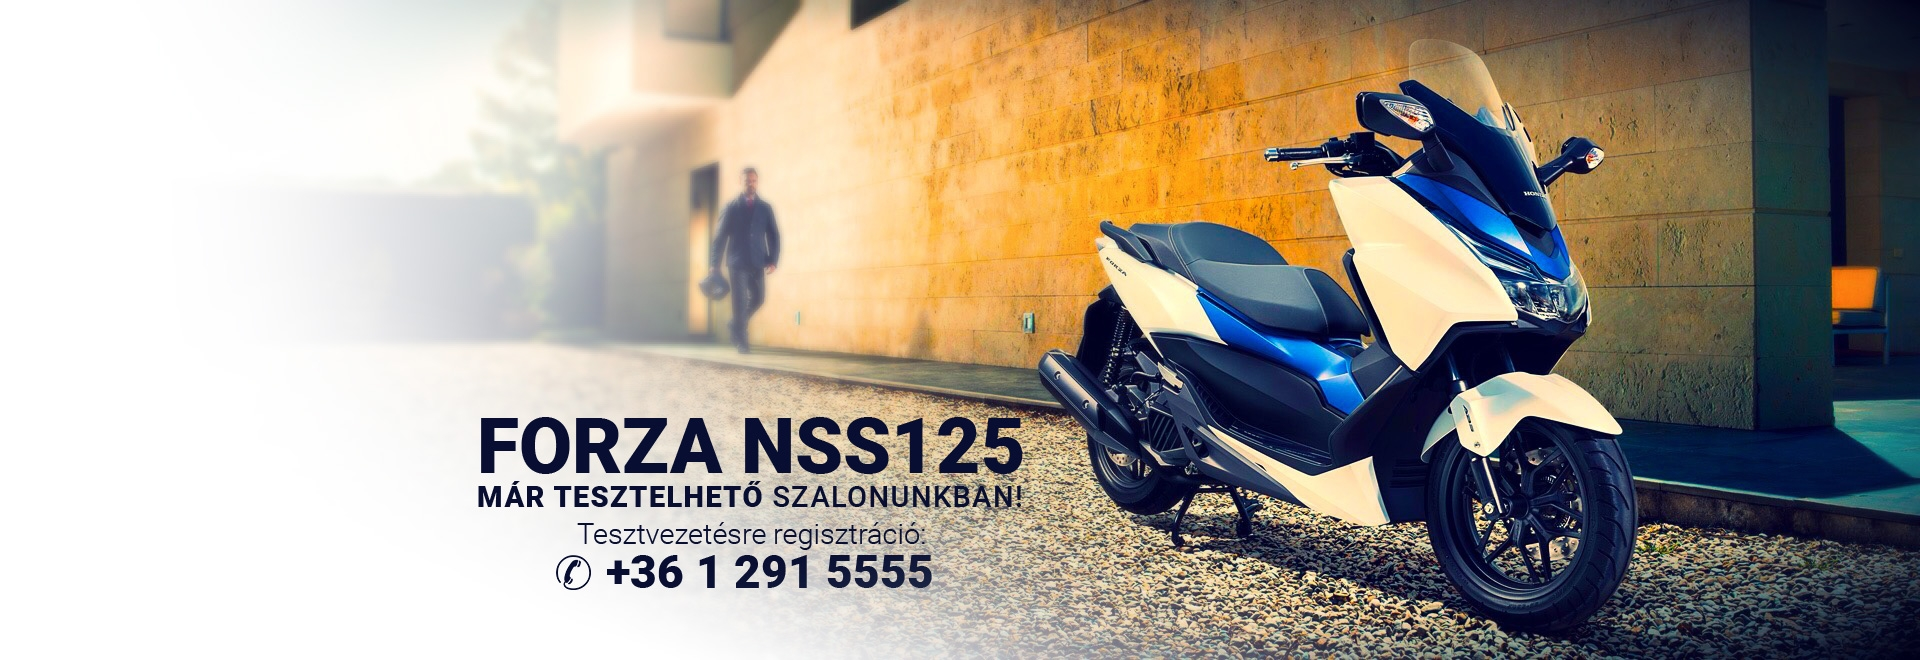 FORZA NSS125